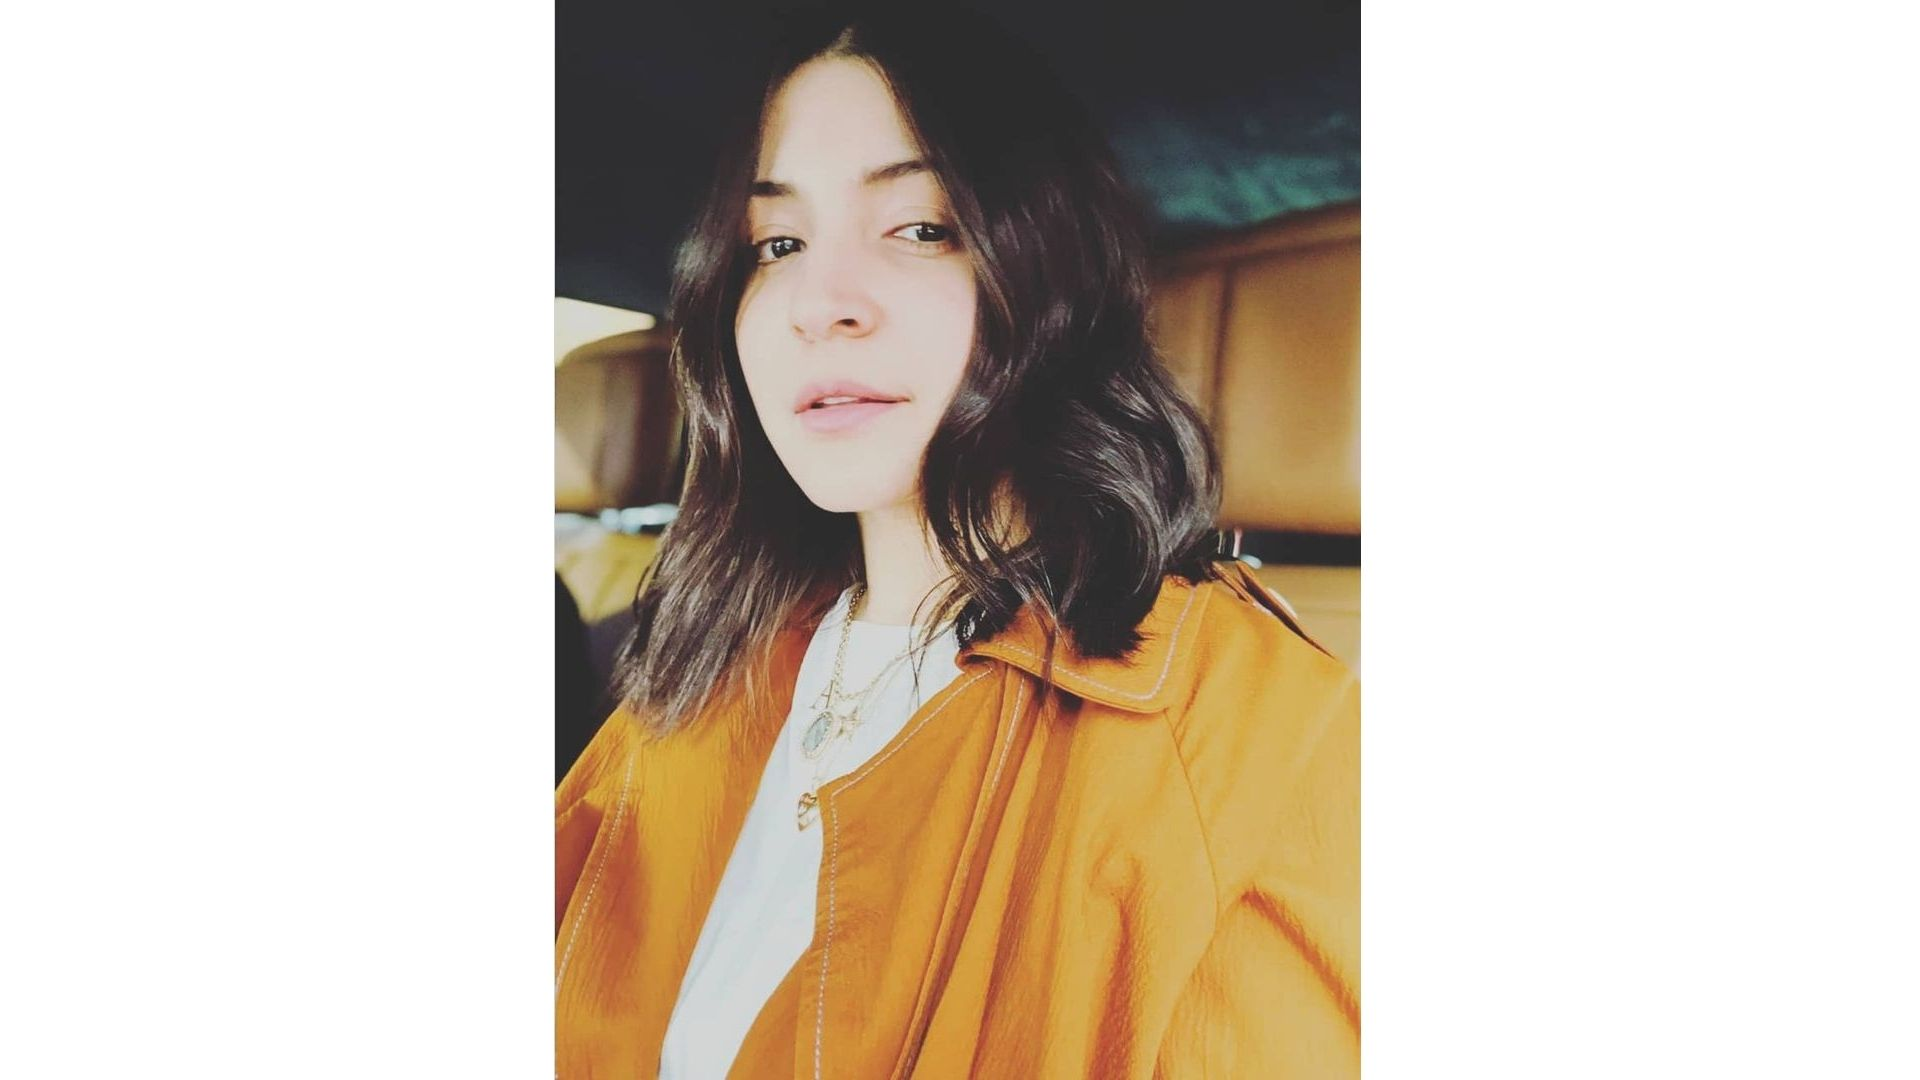 Anushka Sharma Is Back To The Bay With Baby Girl Vamika After UK And Dubai Trip; Shares A 'Sweet Selfie'